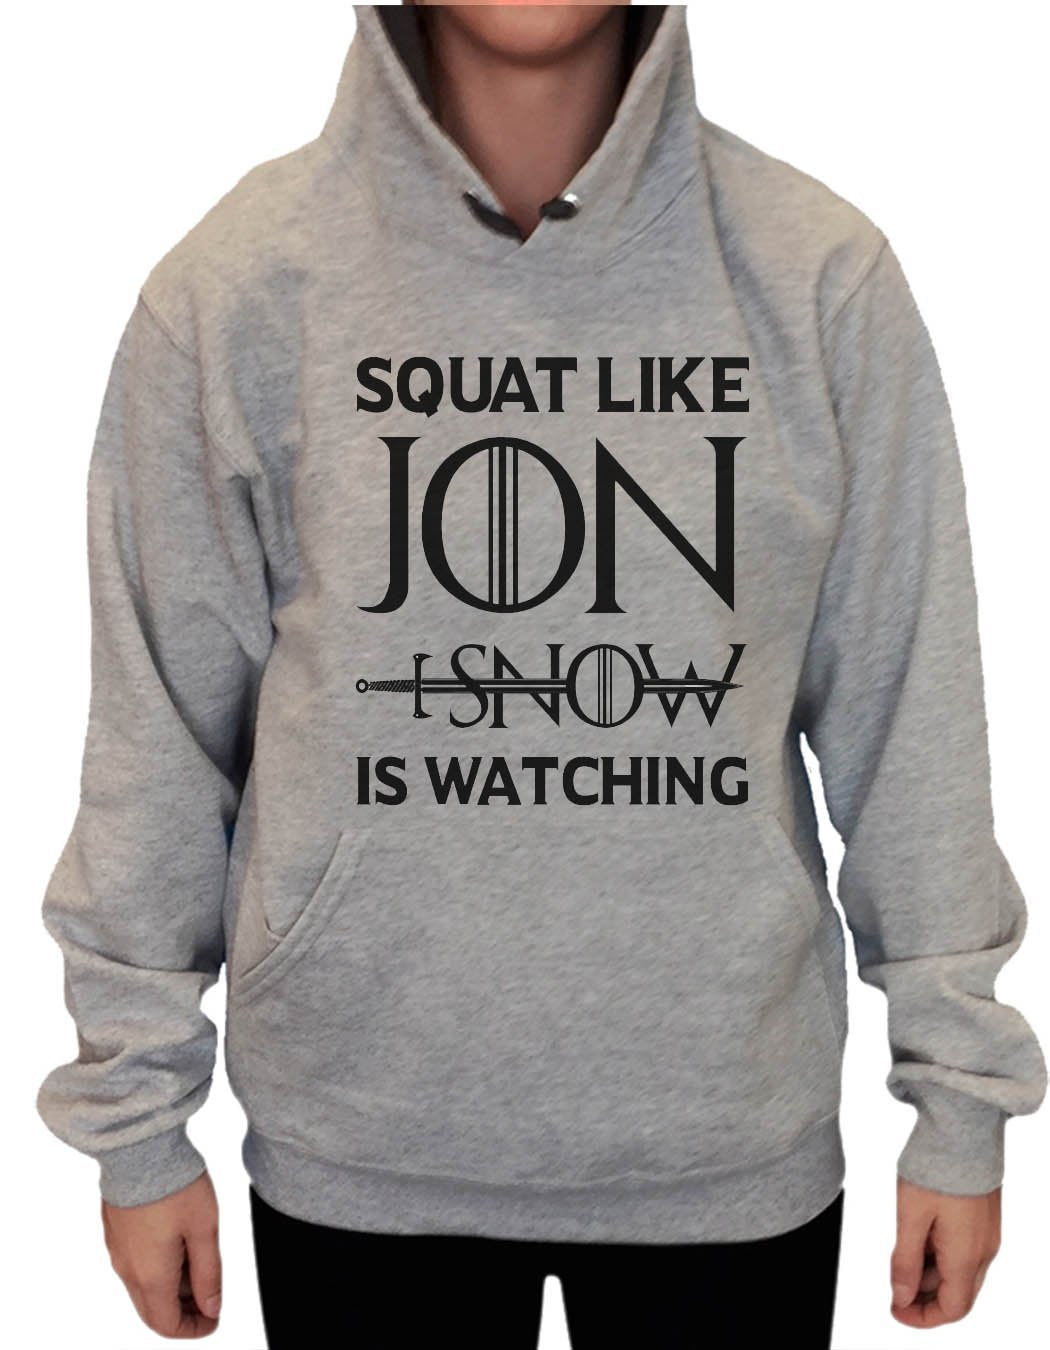 UNISEX HOODIE - Squat Like Jon I Snow Is Watching - FUNNY MENS AND WOMENS HOODED SWEATSHIRTS - BB19 Funny Shirt Small / Heather Grey